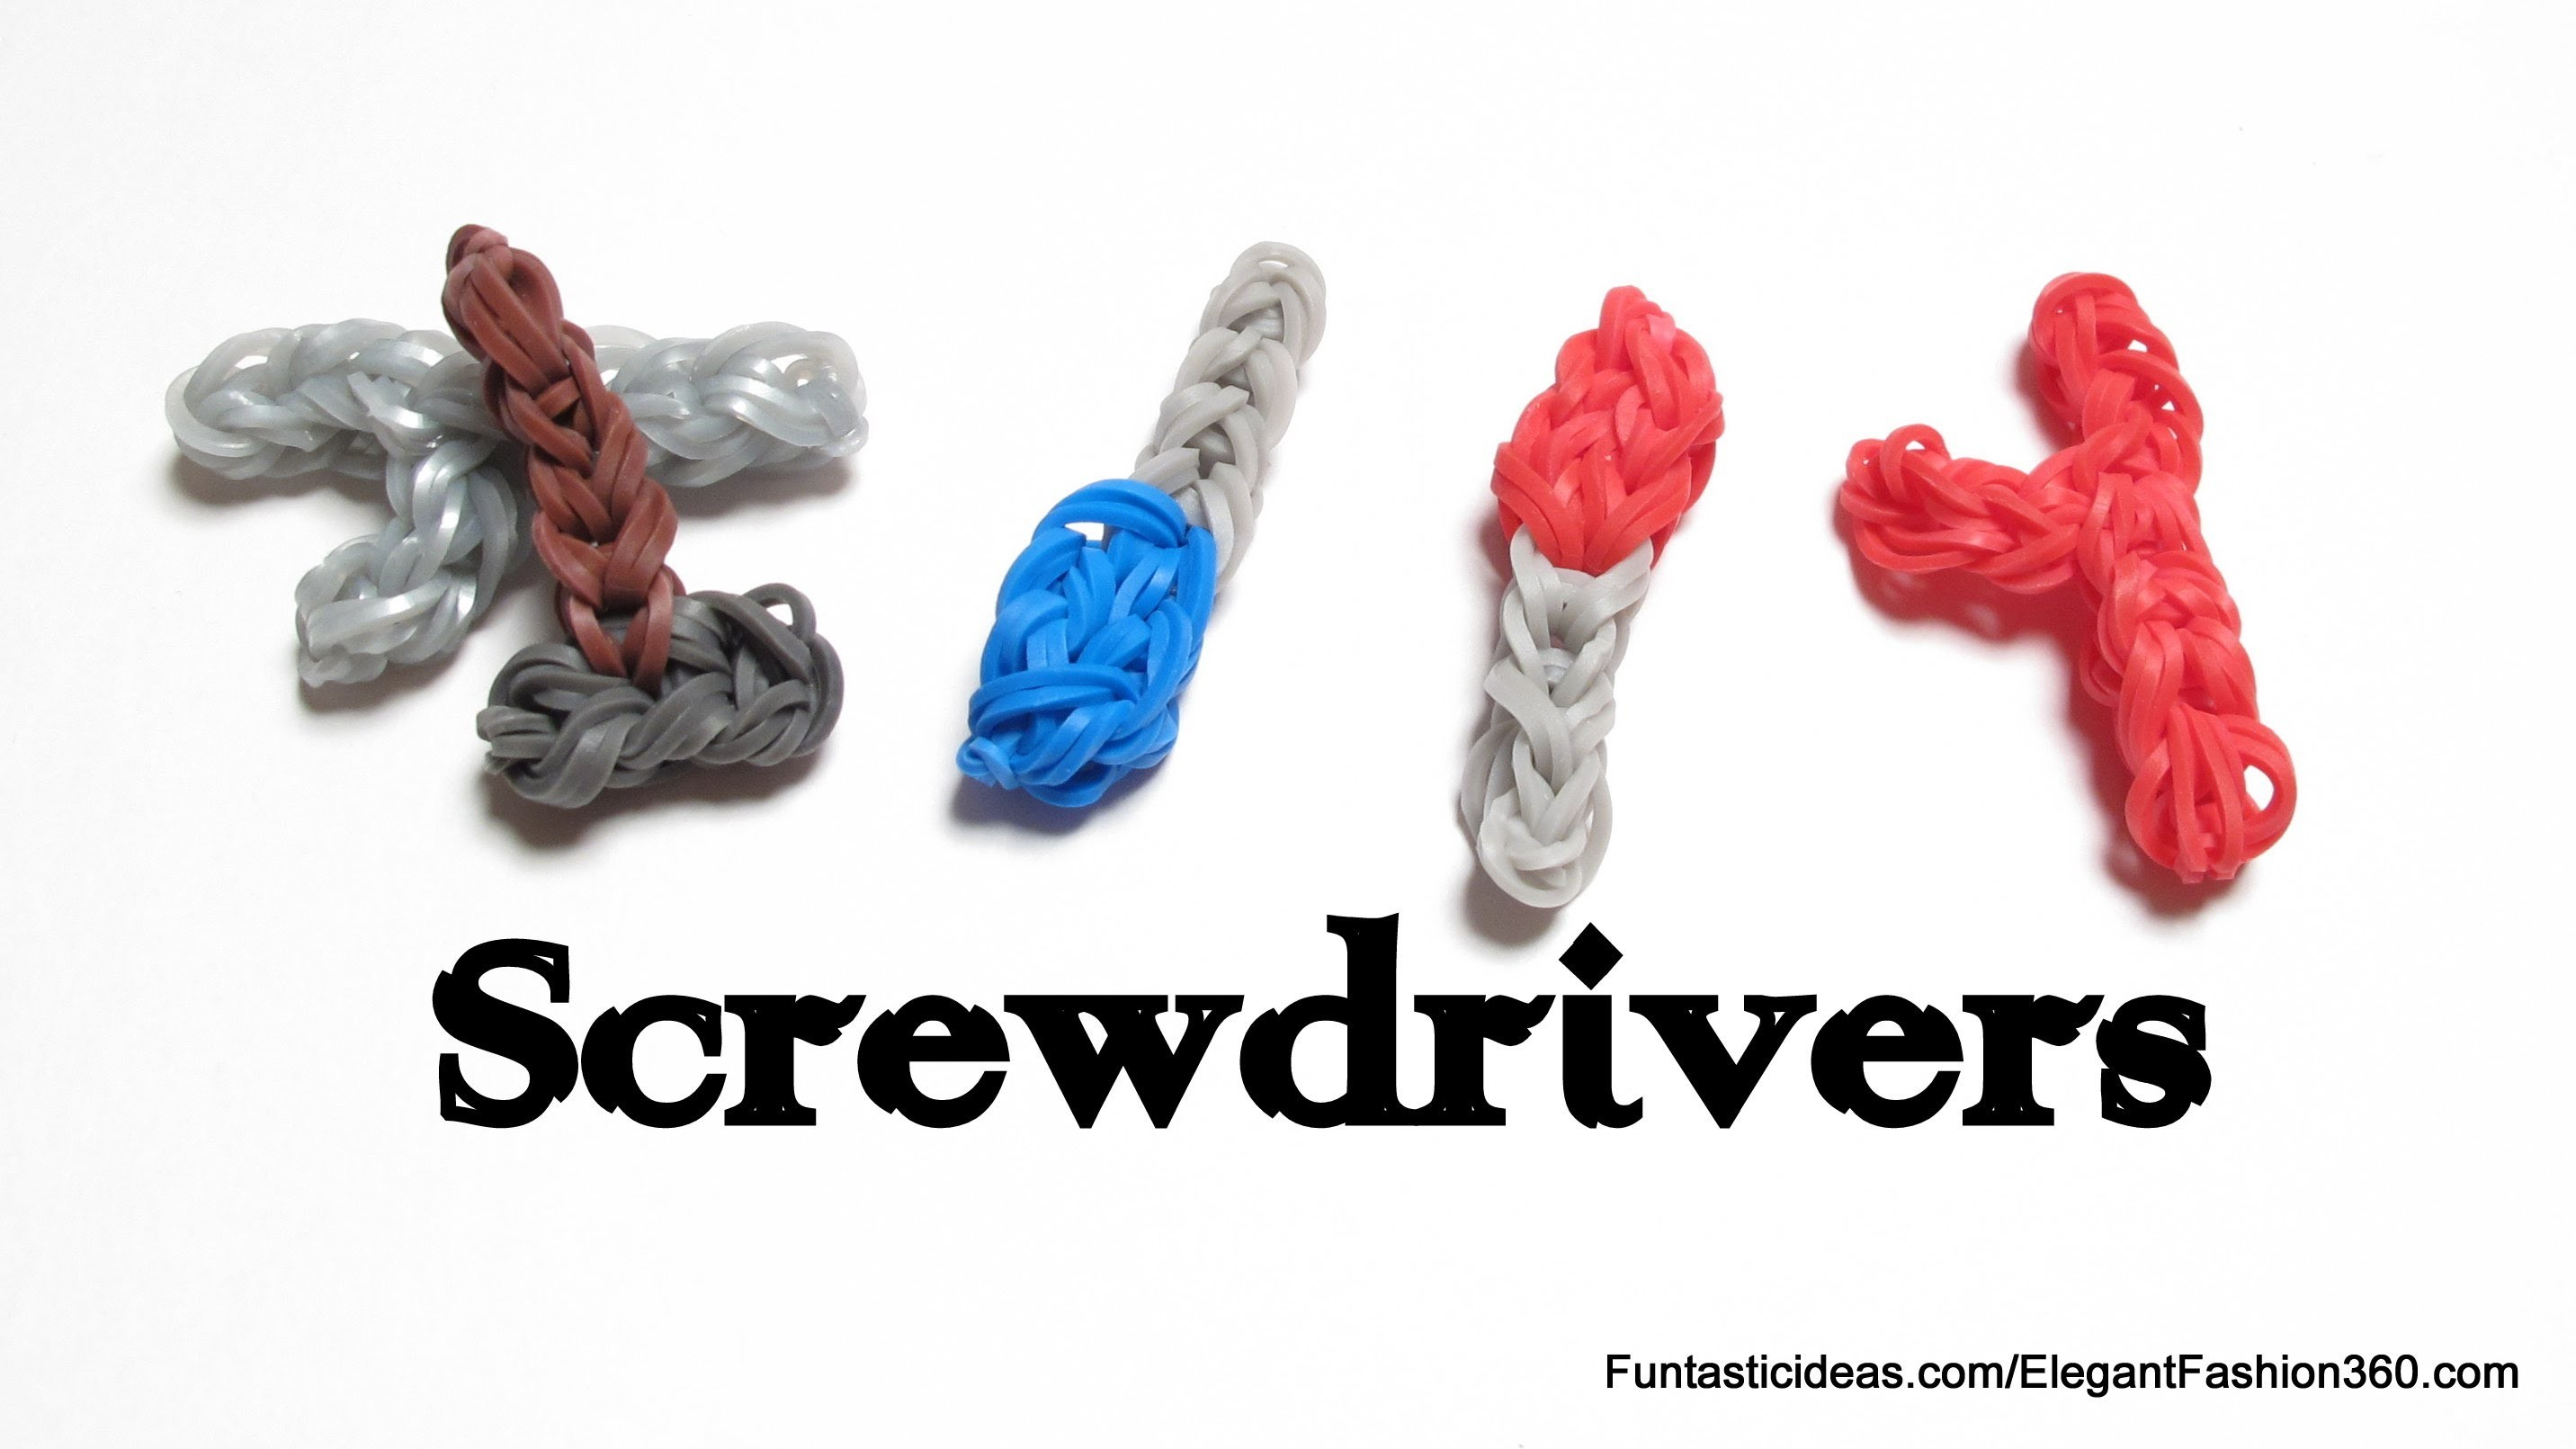 Rainbow Loom Screwdriver charms - How to- Father's Day Gift Ideas: Tools Set